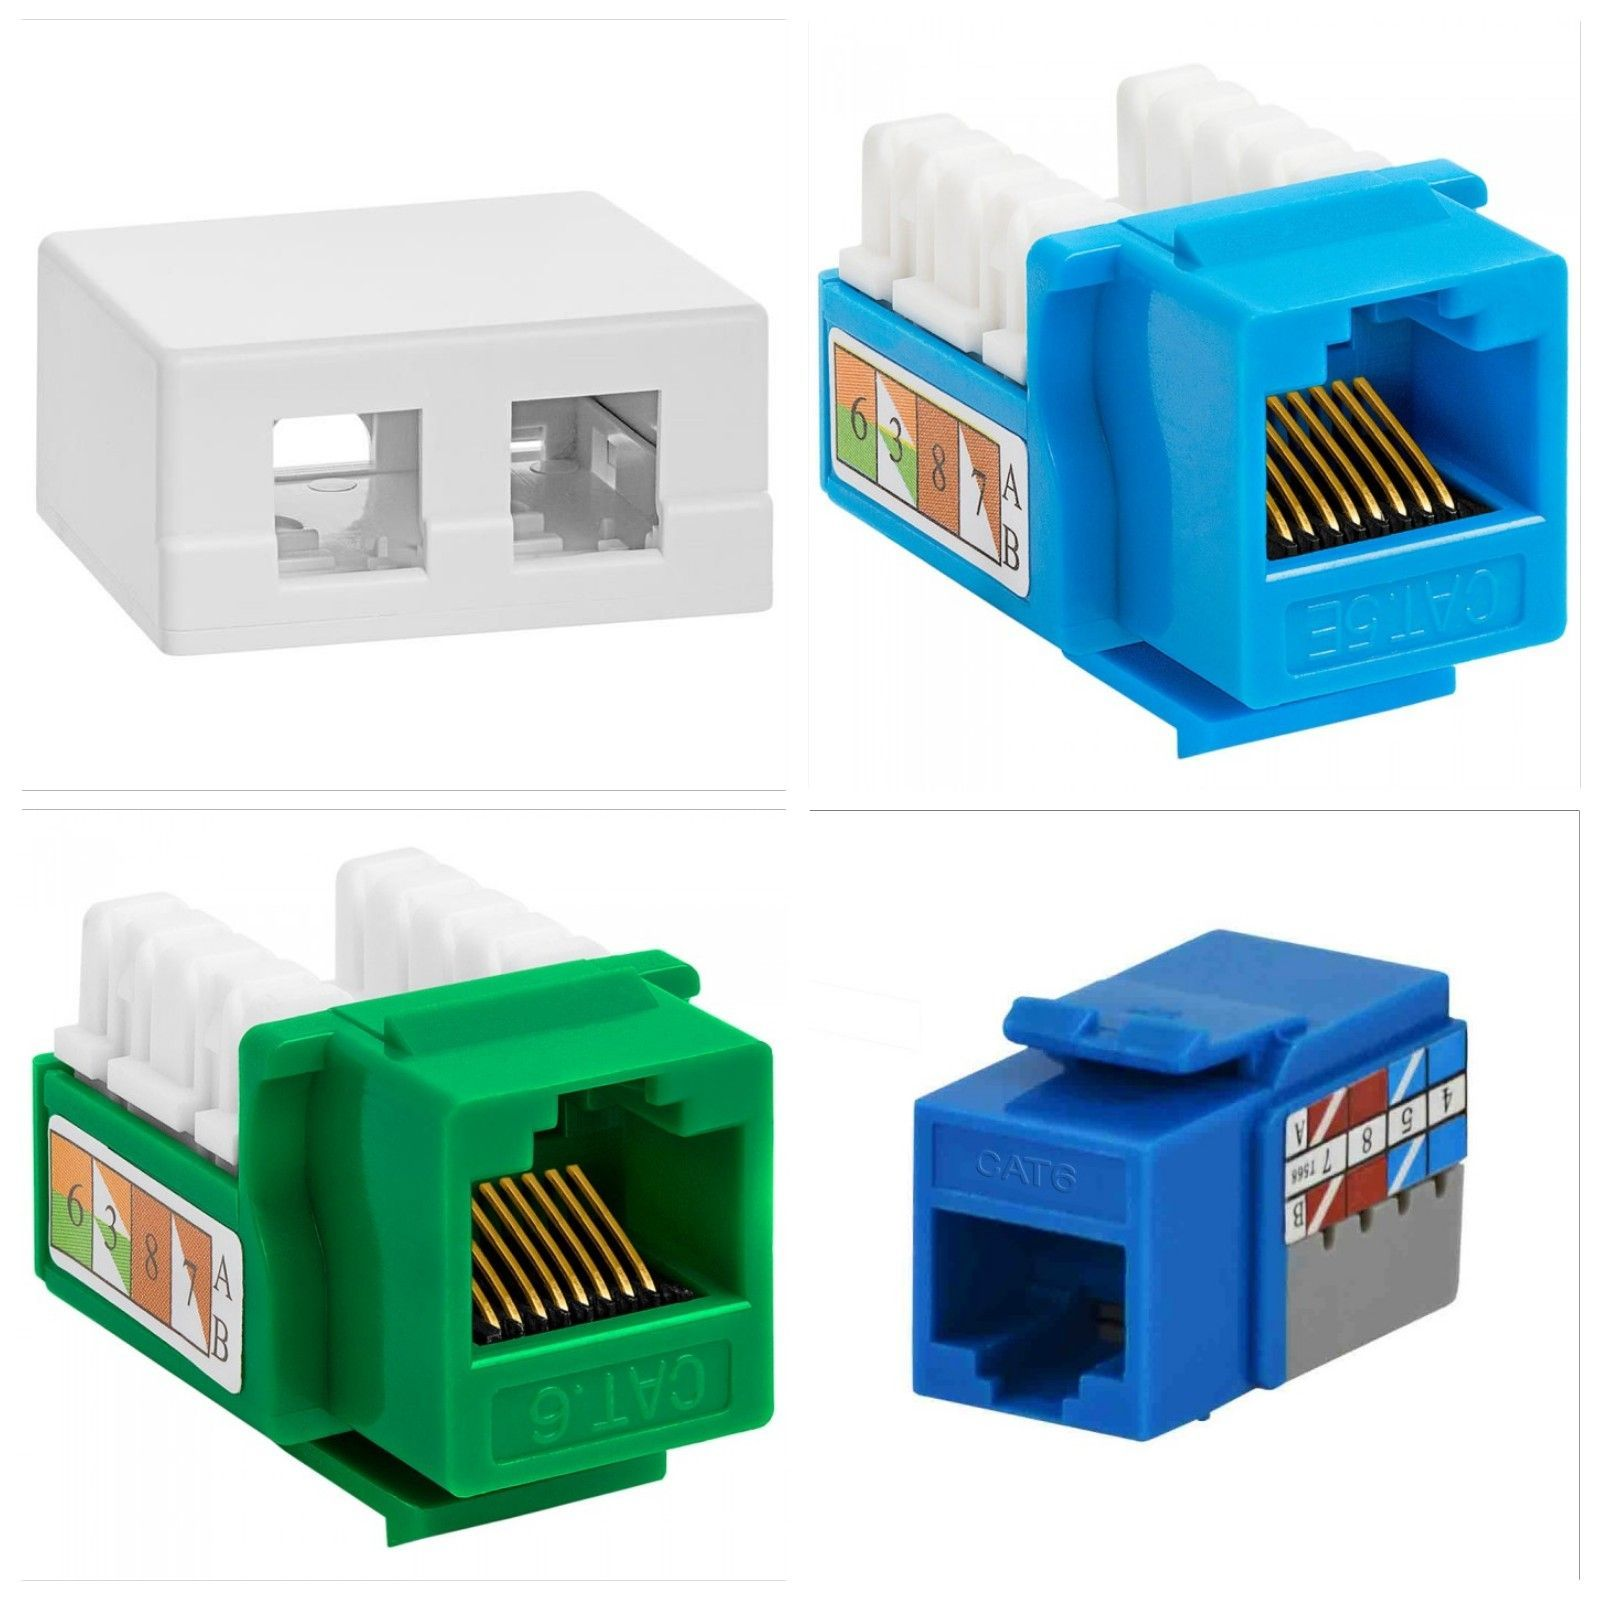 Most Rated Accessories 2 Port Keystone Jack Cat5e Wire Diagram Jacks Cat6 Available In Multiple Colors